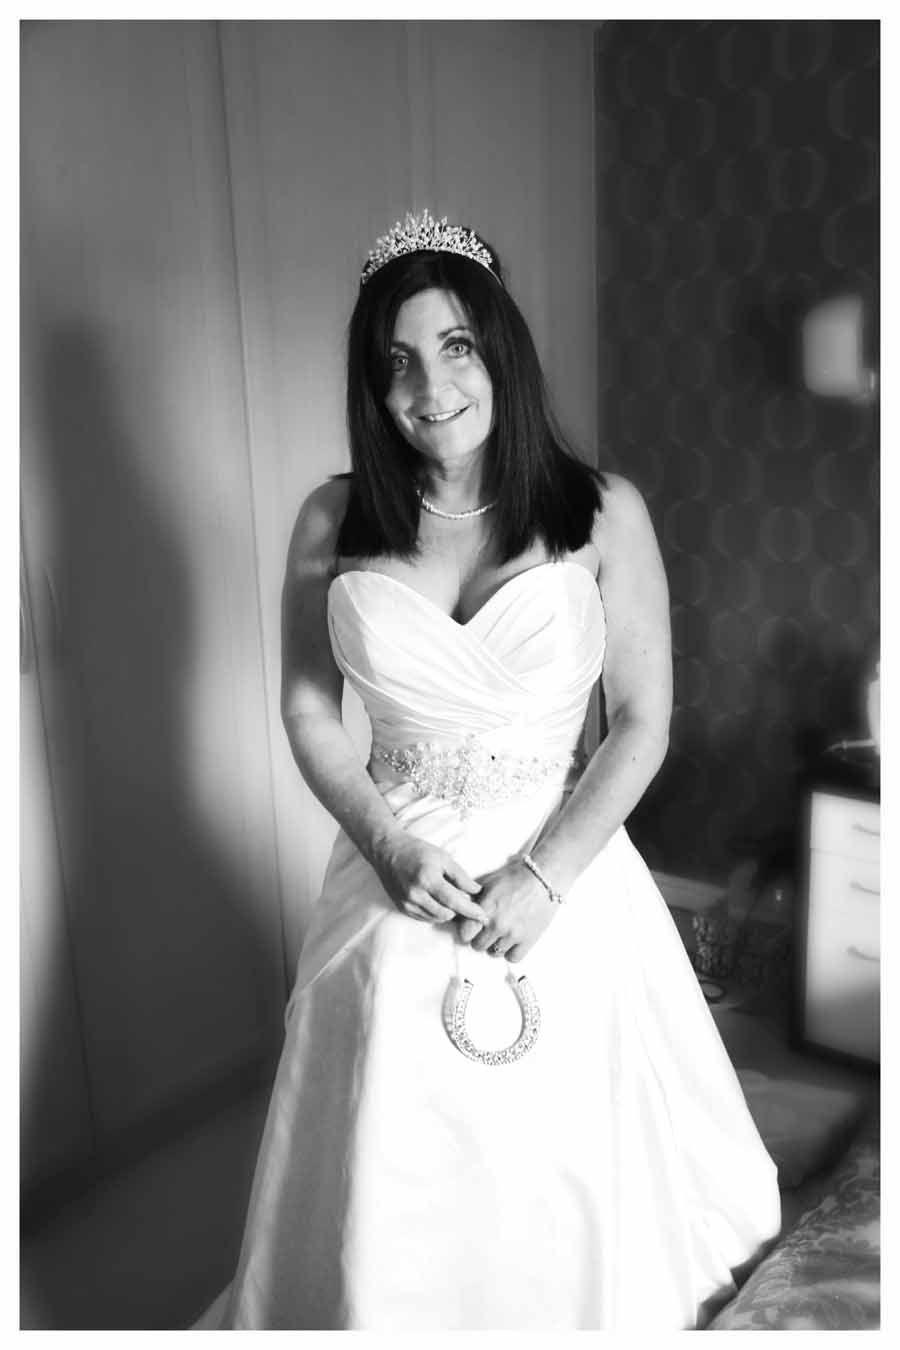 BRIDE Photos by Simeon Thaw copyright 2014 (58).jpg